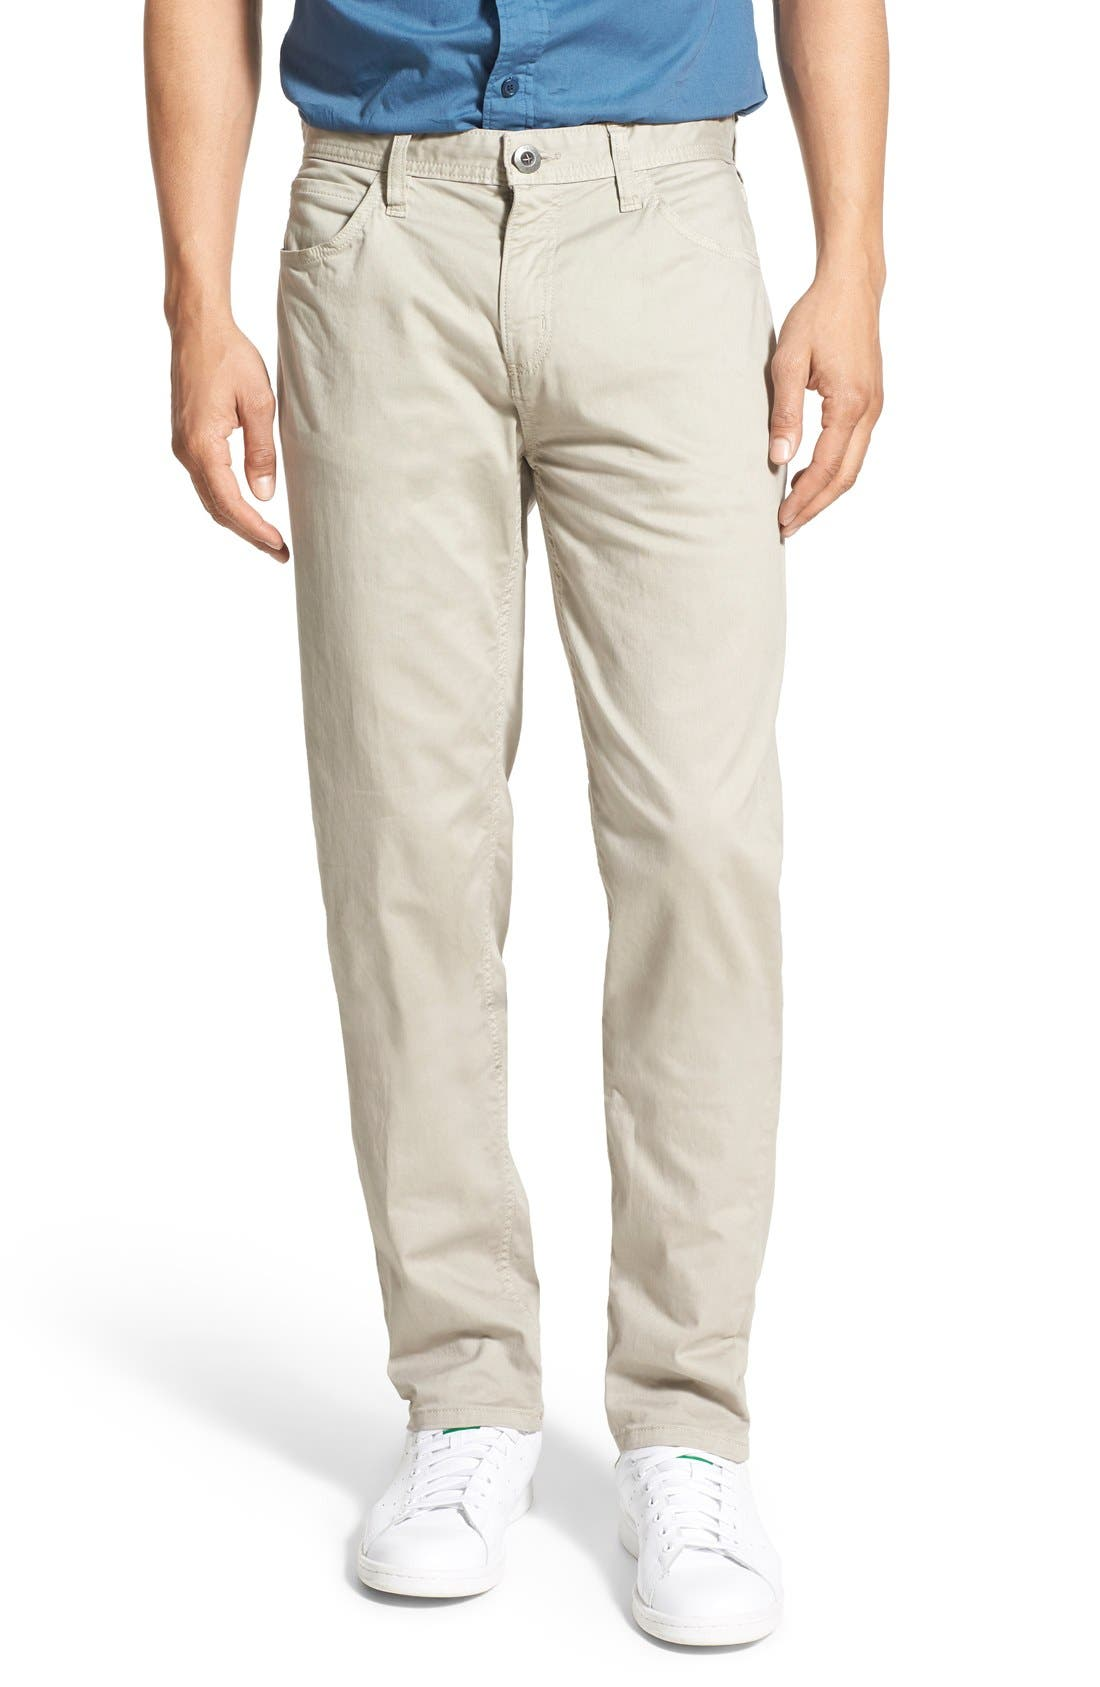 'Silverlake' Pants,                         Main,                         color, Bone